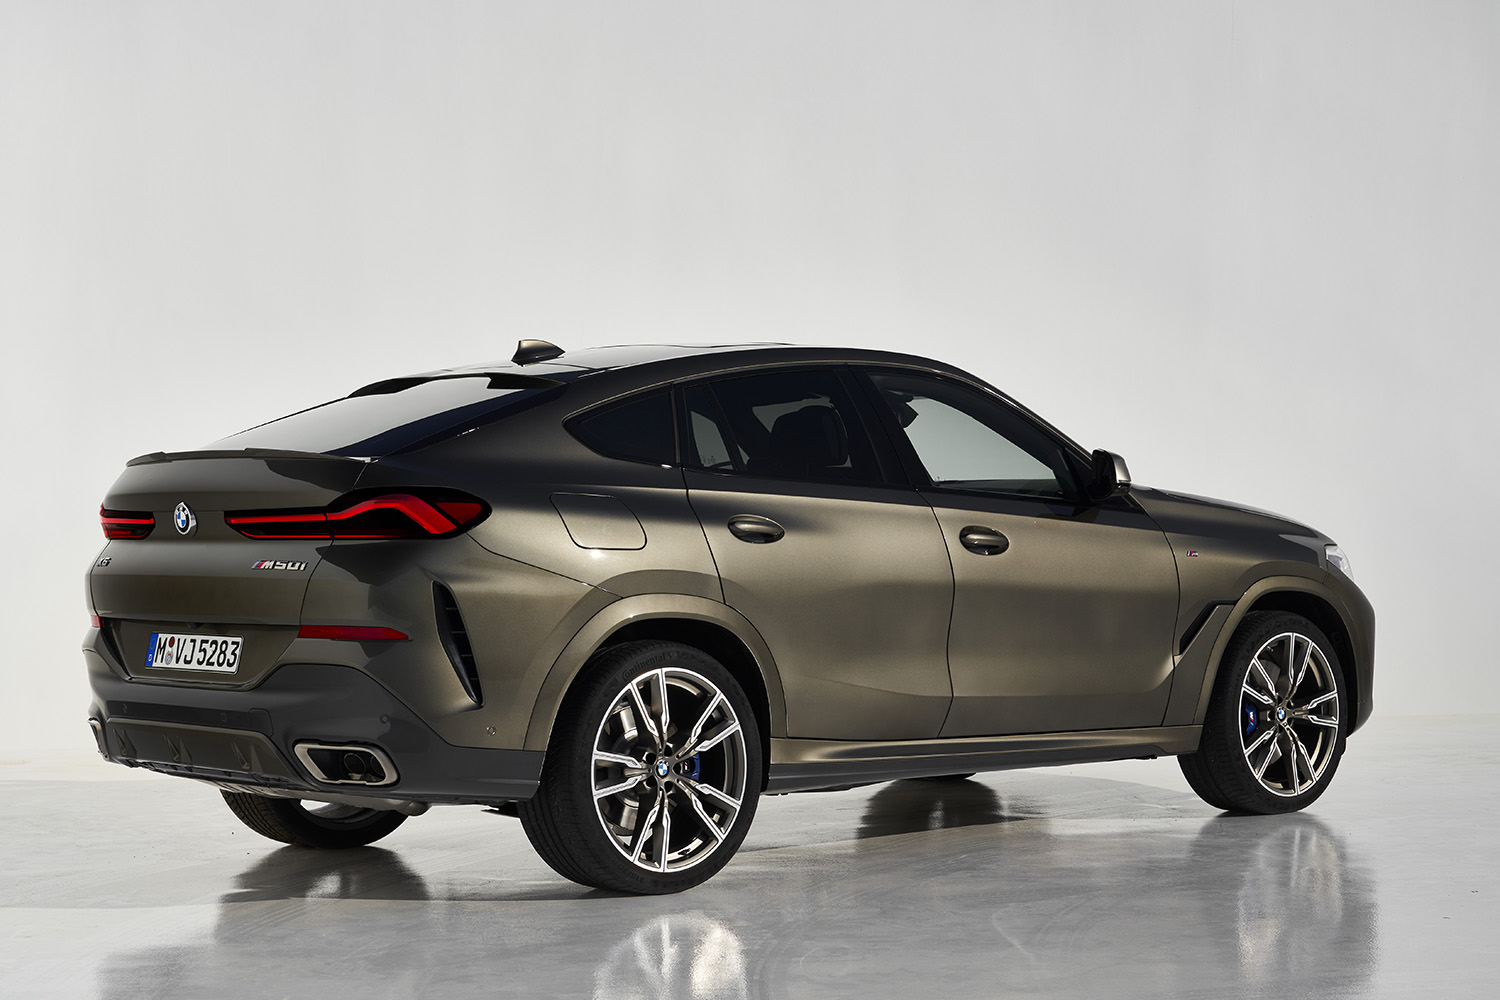 BMW's Famous SUV Gets a Revamp